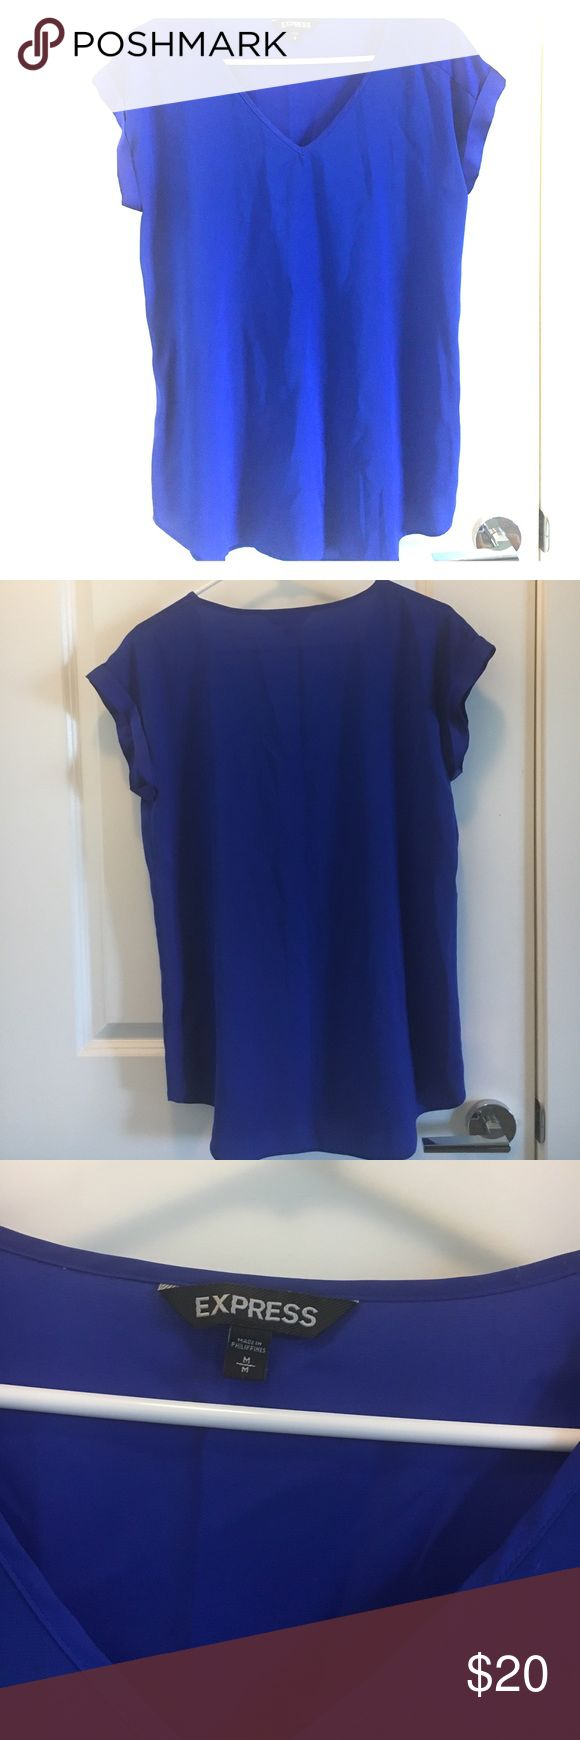 Royal blue blouse Beautiful blouse in royal blue. There is not much stretch the shirt. In great condition. From a smoke free home. Express Tops Blouses